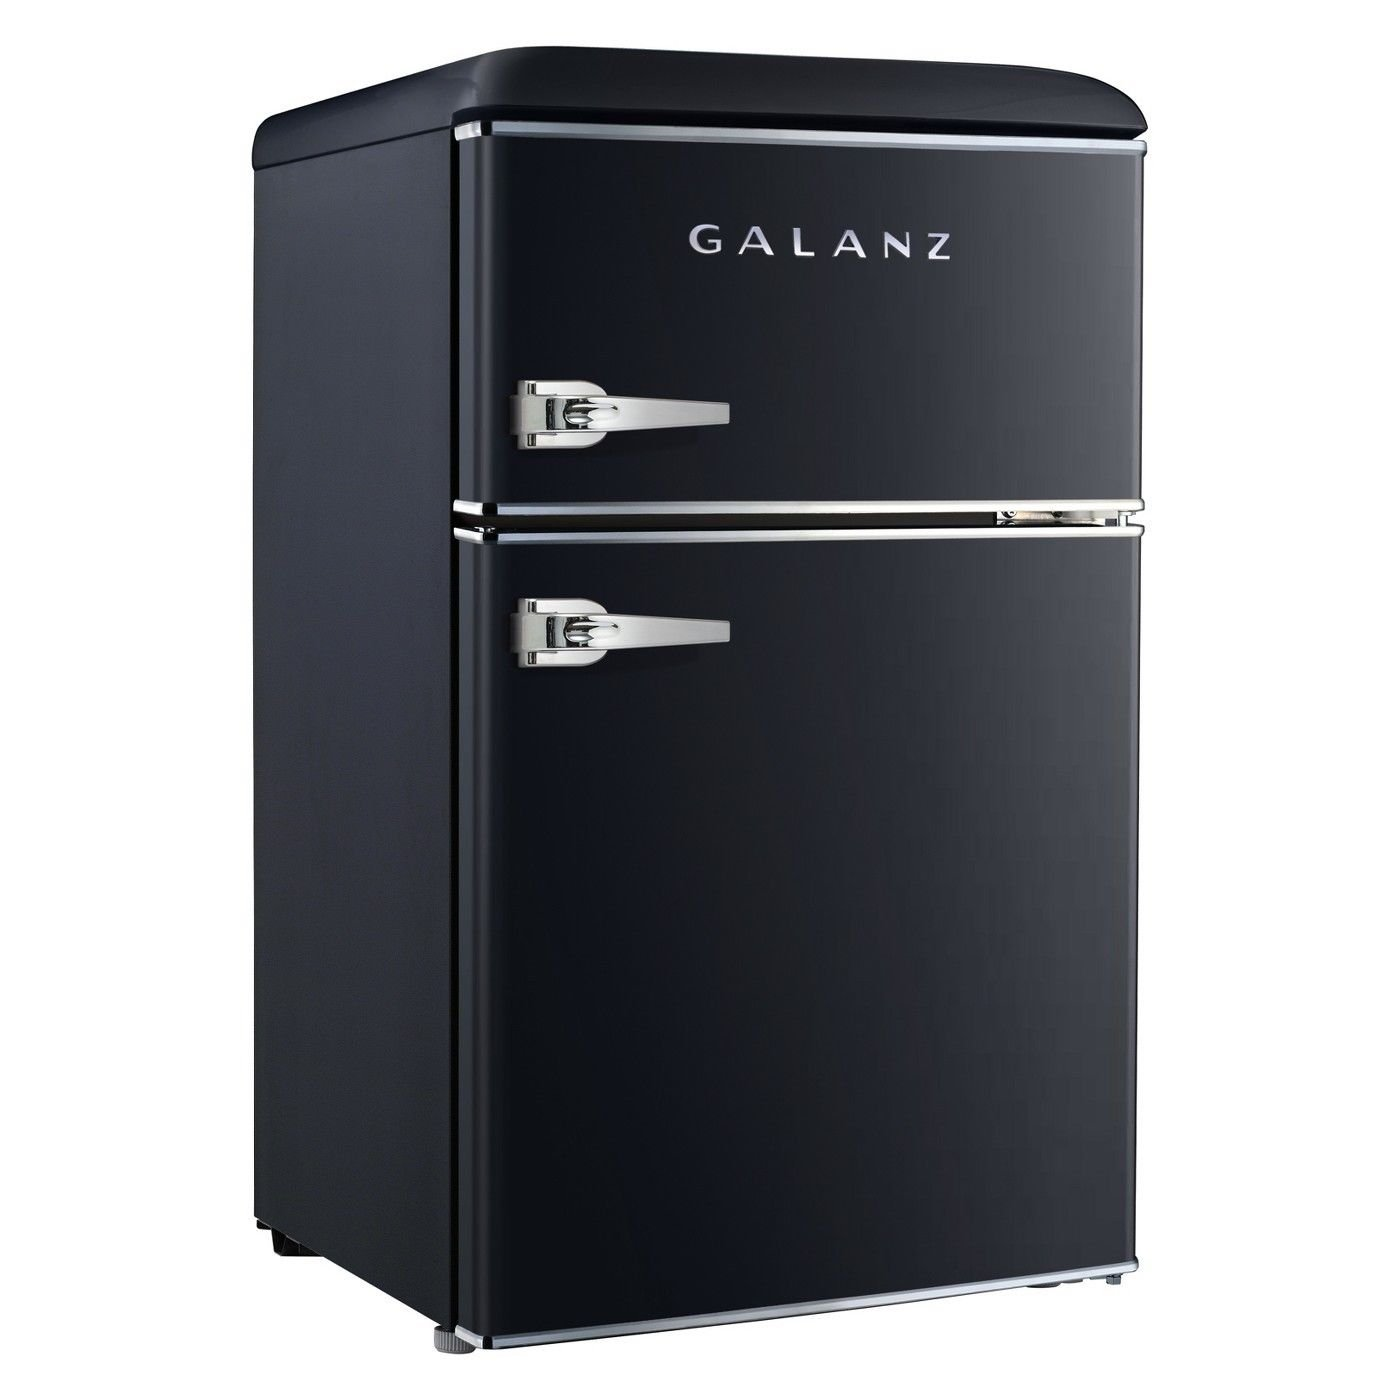 Galanz 3.1 cu ft Black Retro Mini Fridge